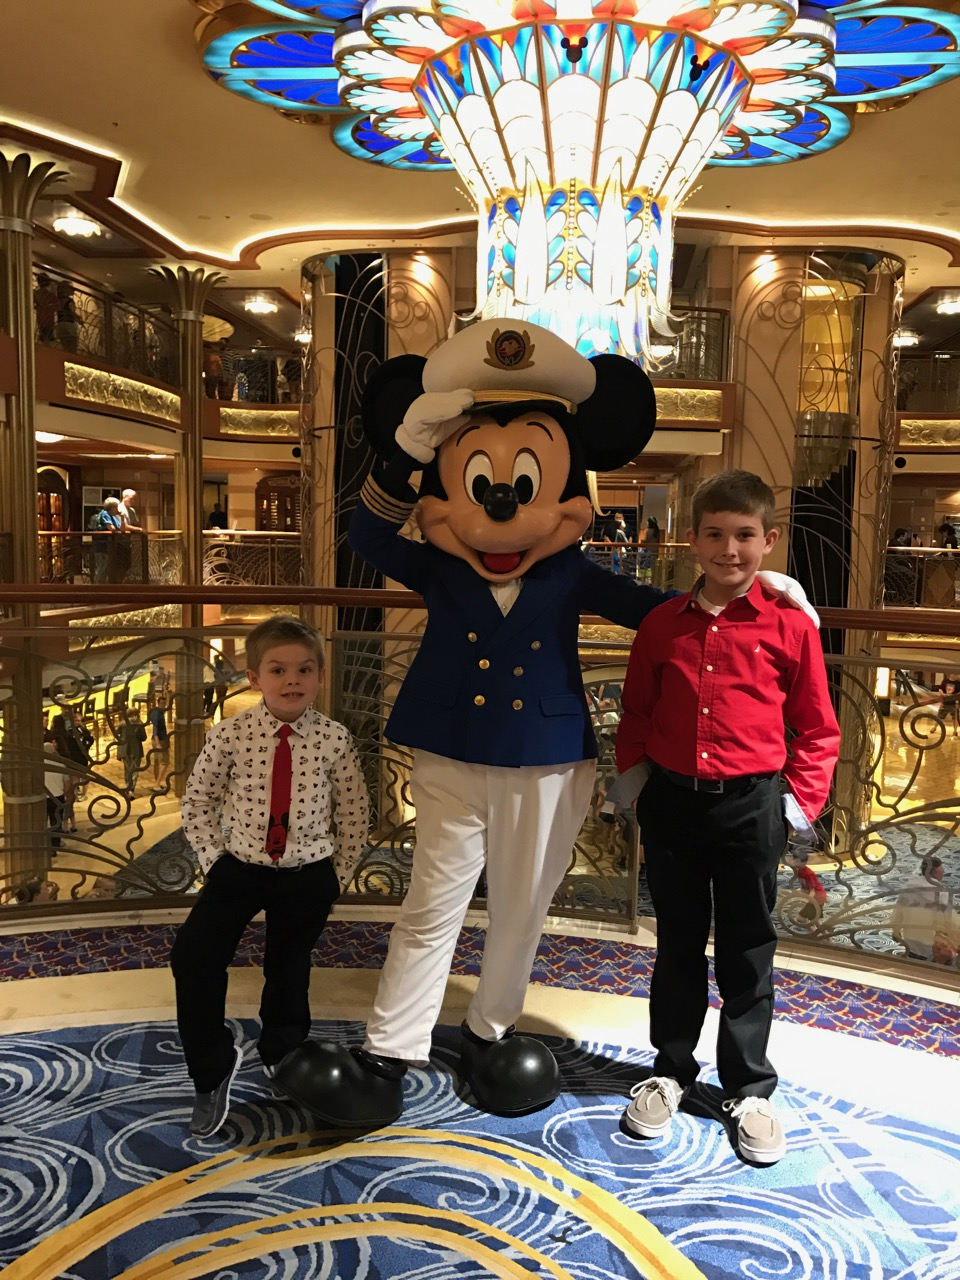 Disney Dream Captain Mickey Meet and Greet